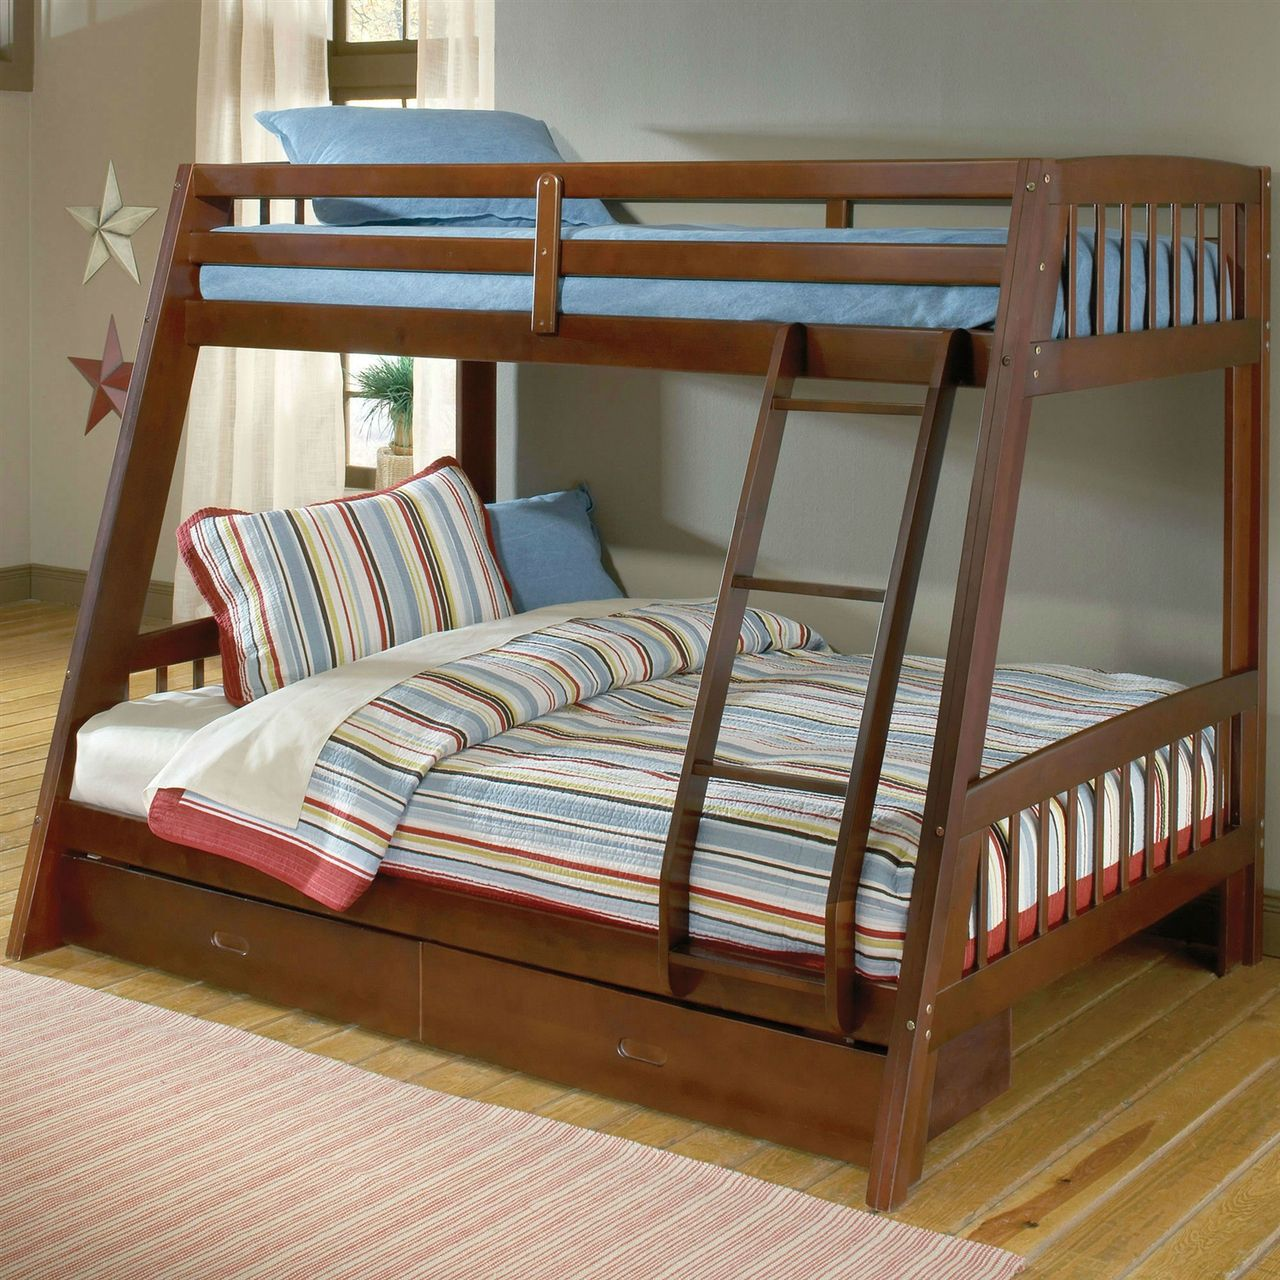 Modern Twin Over Full Bunk Bed With Ladder And Storage Drawers In